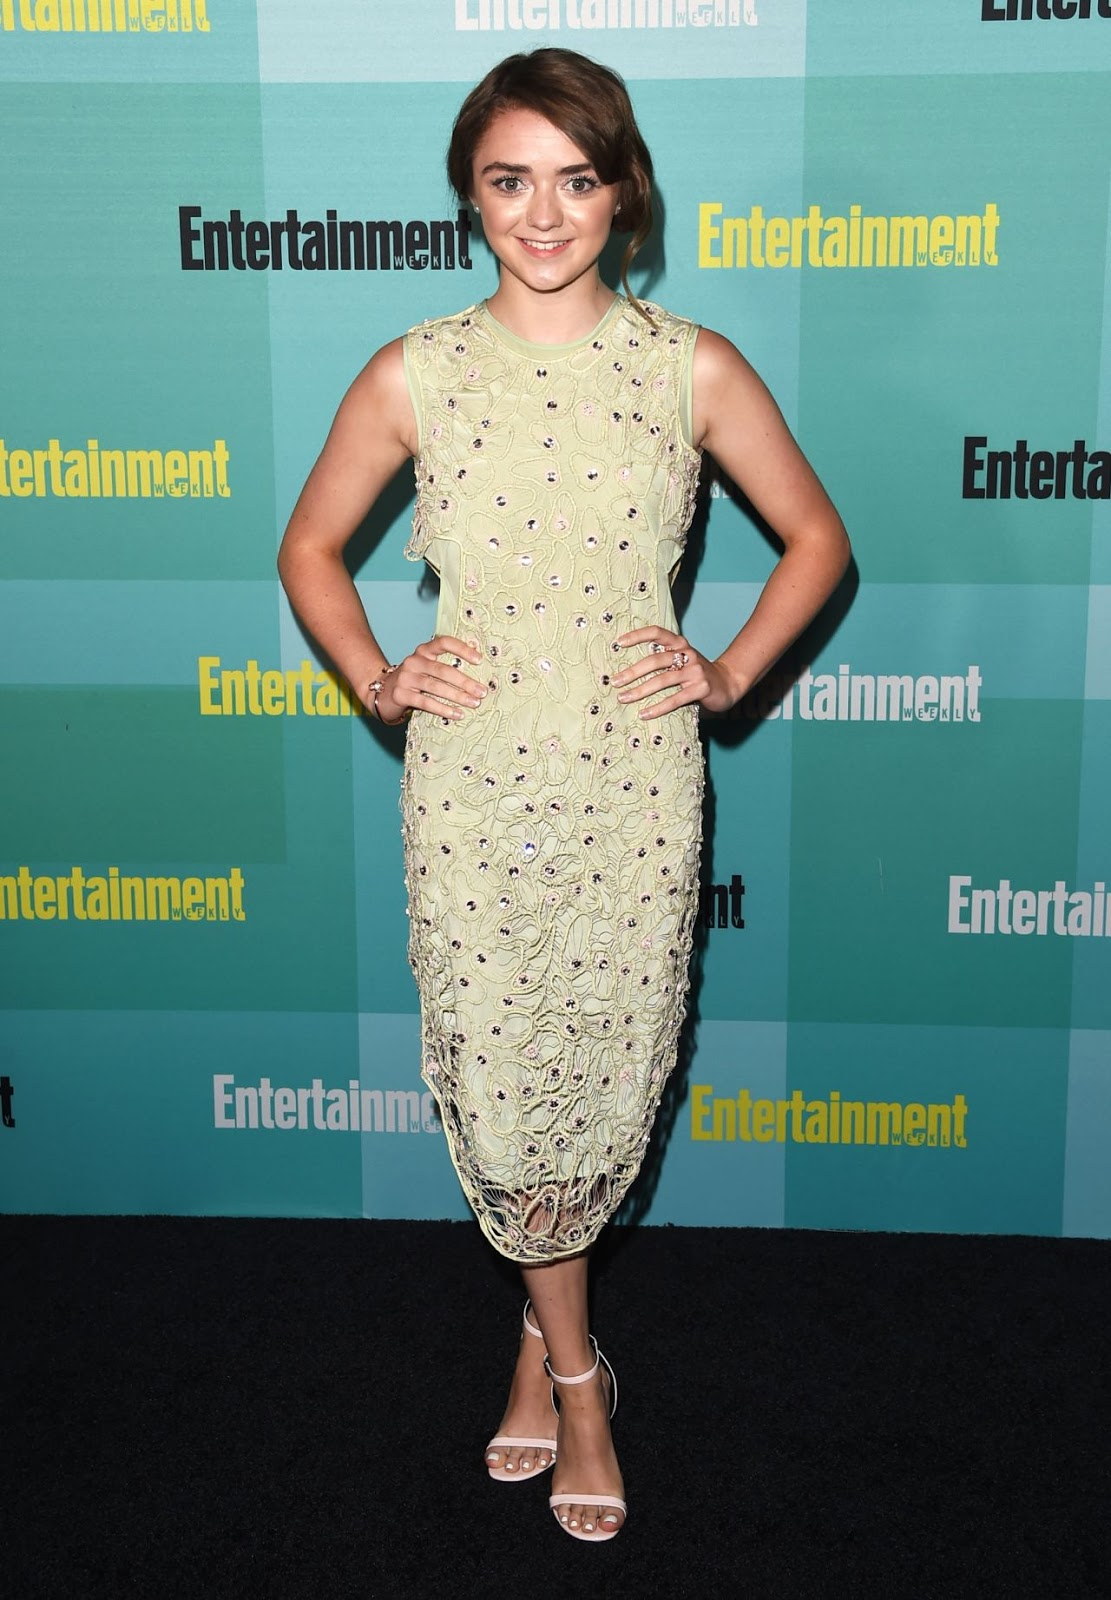 Maisie Williams goes glamorous at the Entertainment Weekly Party at Comic-Con 2015